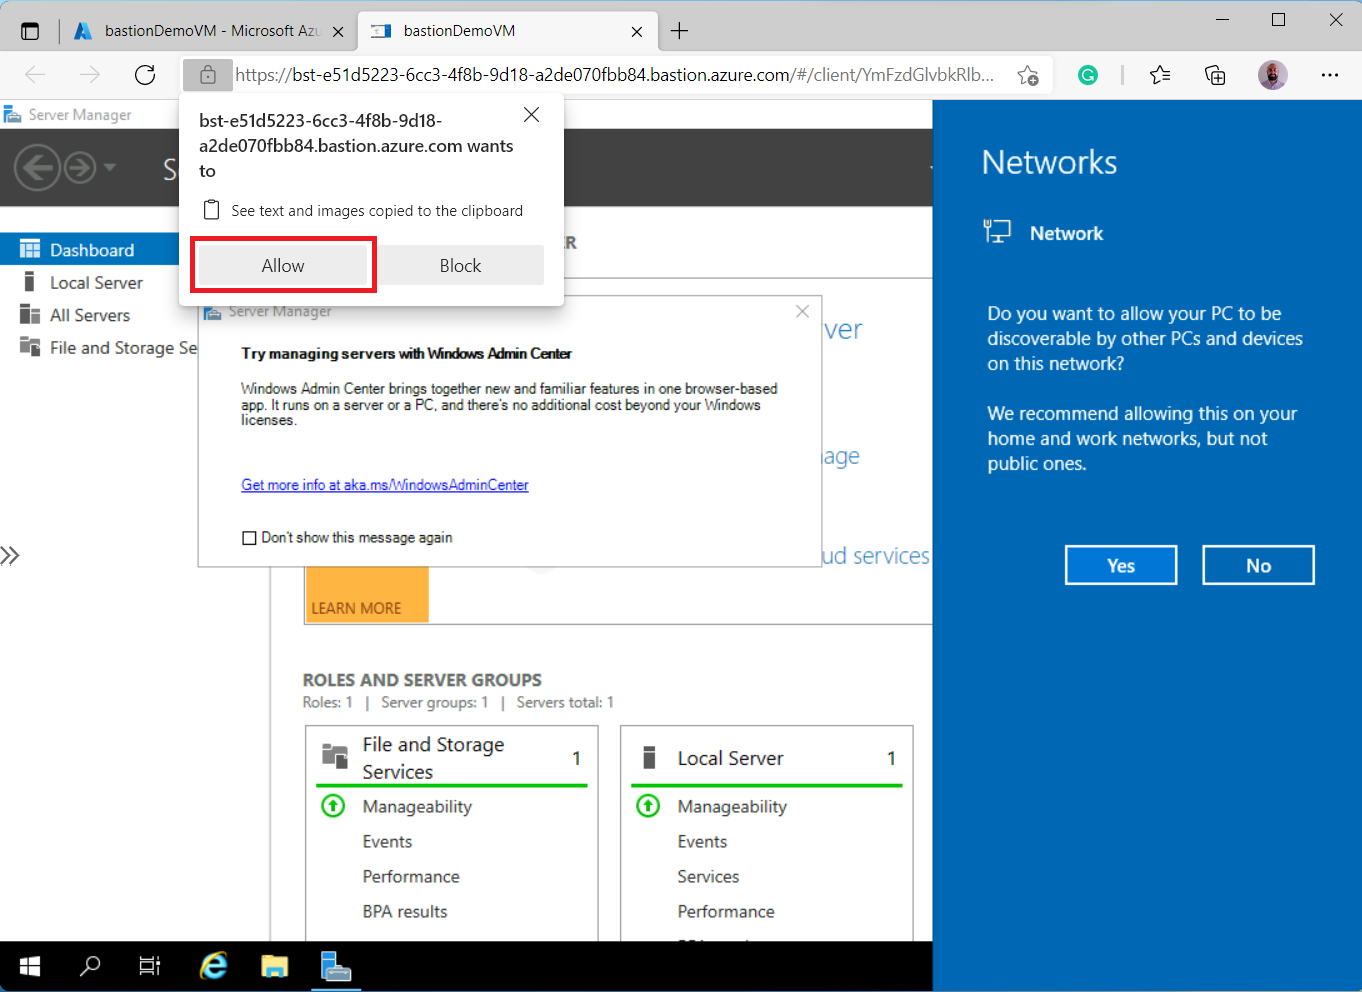 Allowing shared clipboard in Azure Bastion